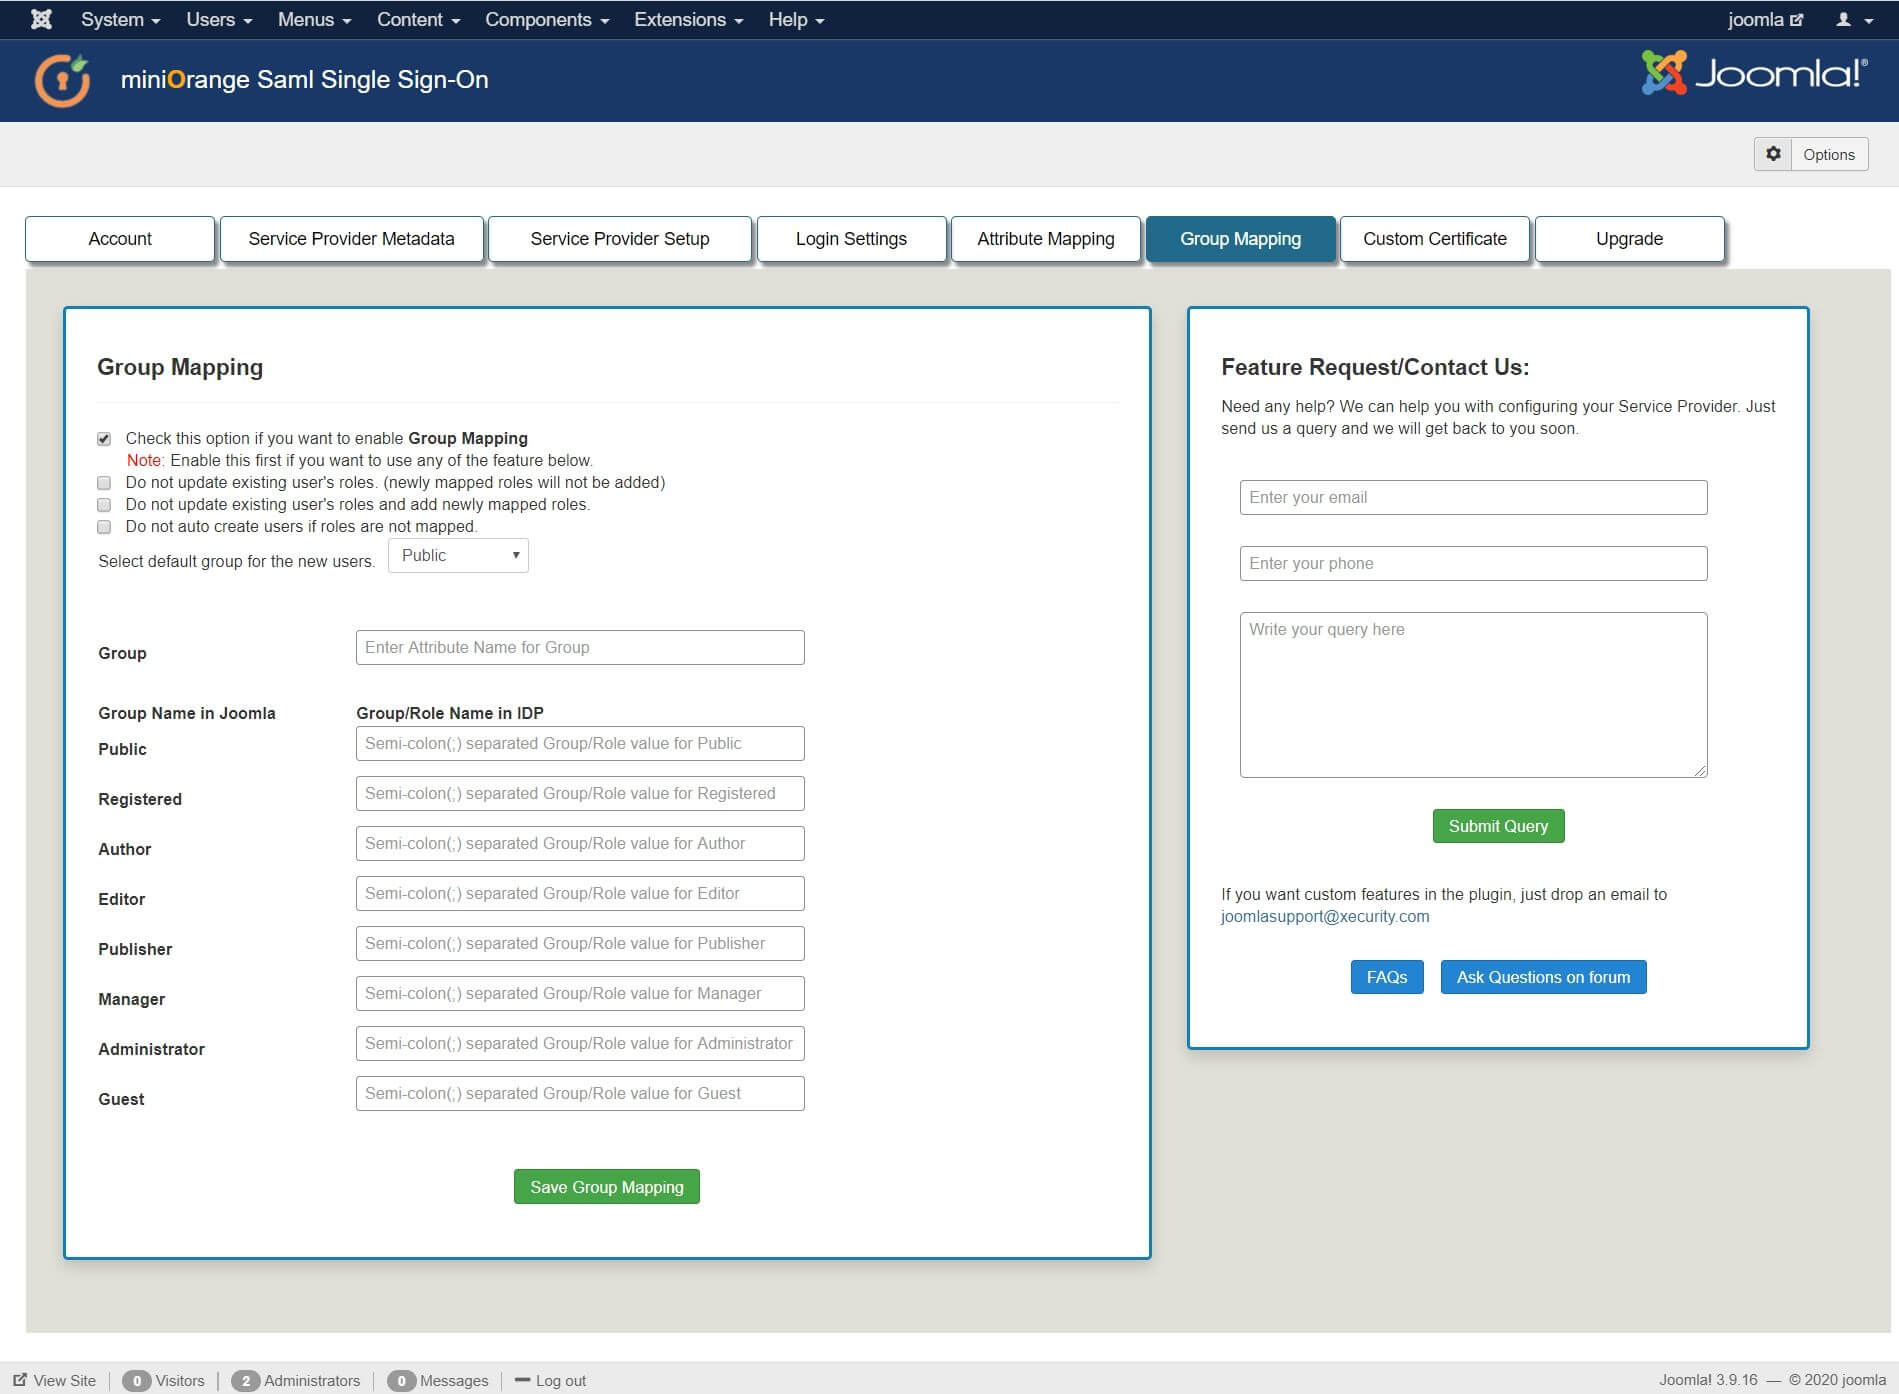 Joomla SAML Single Sign On (SSO) pingfederate sso role mapping